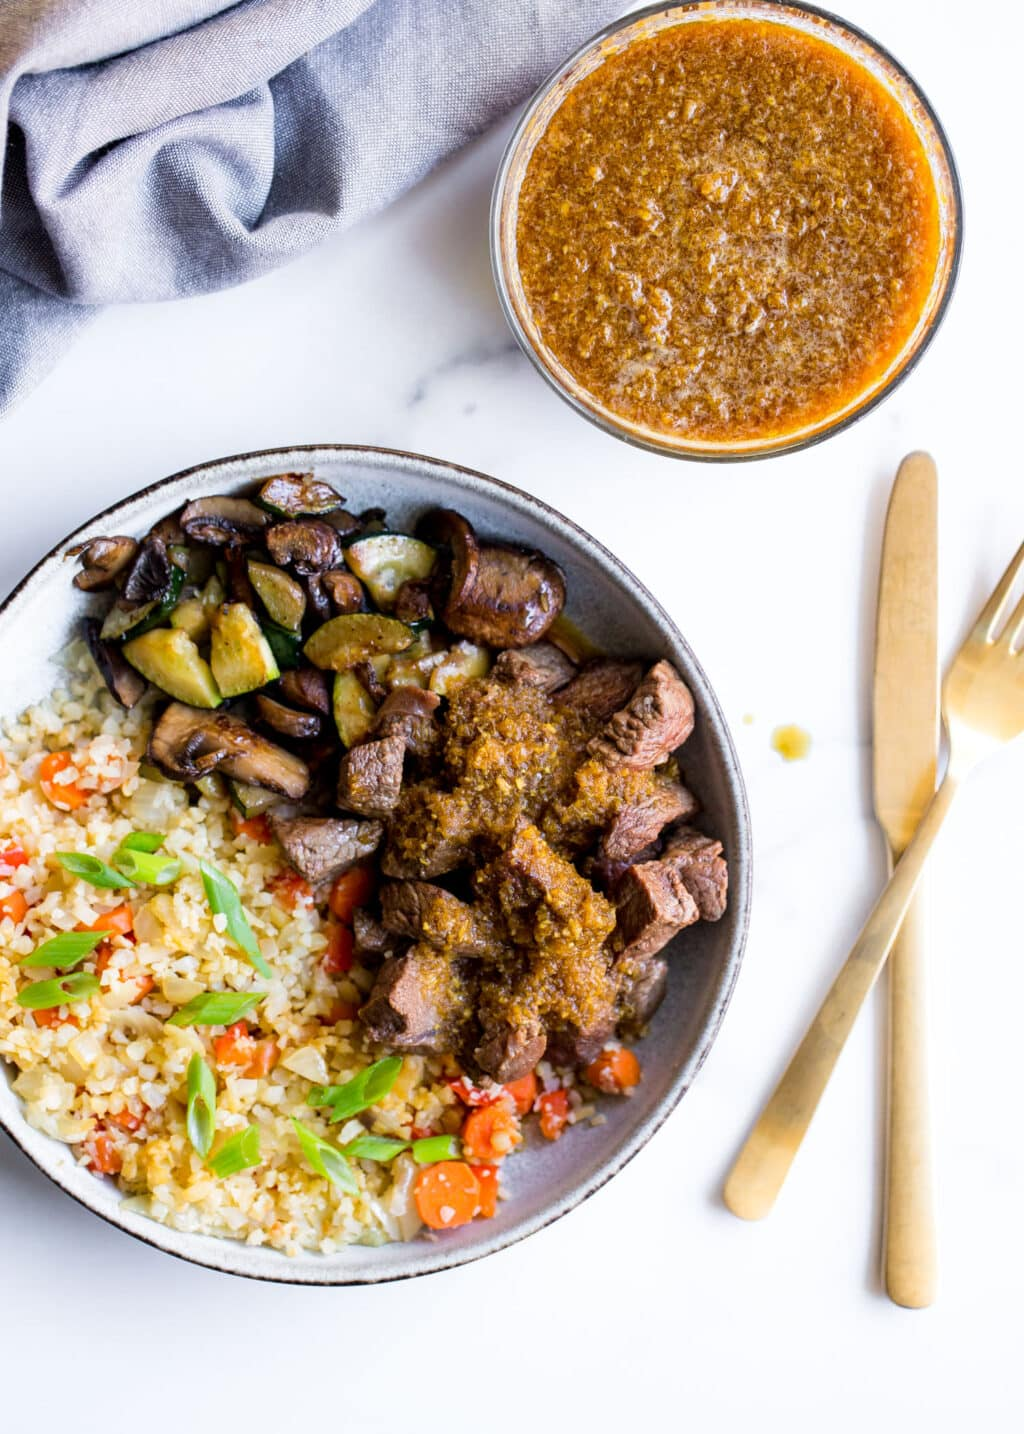 Bowl of steak and cauliflower rice on a white background with fork and knife.